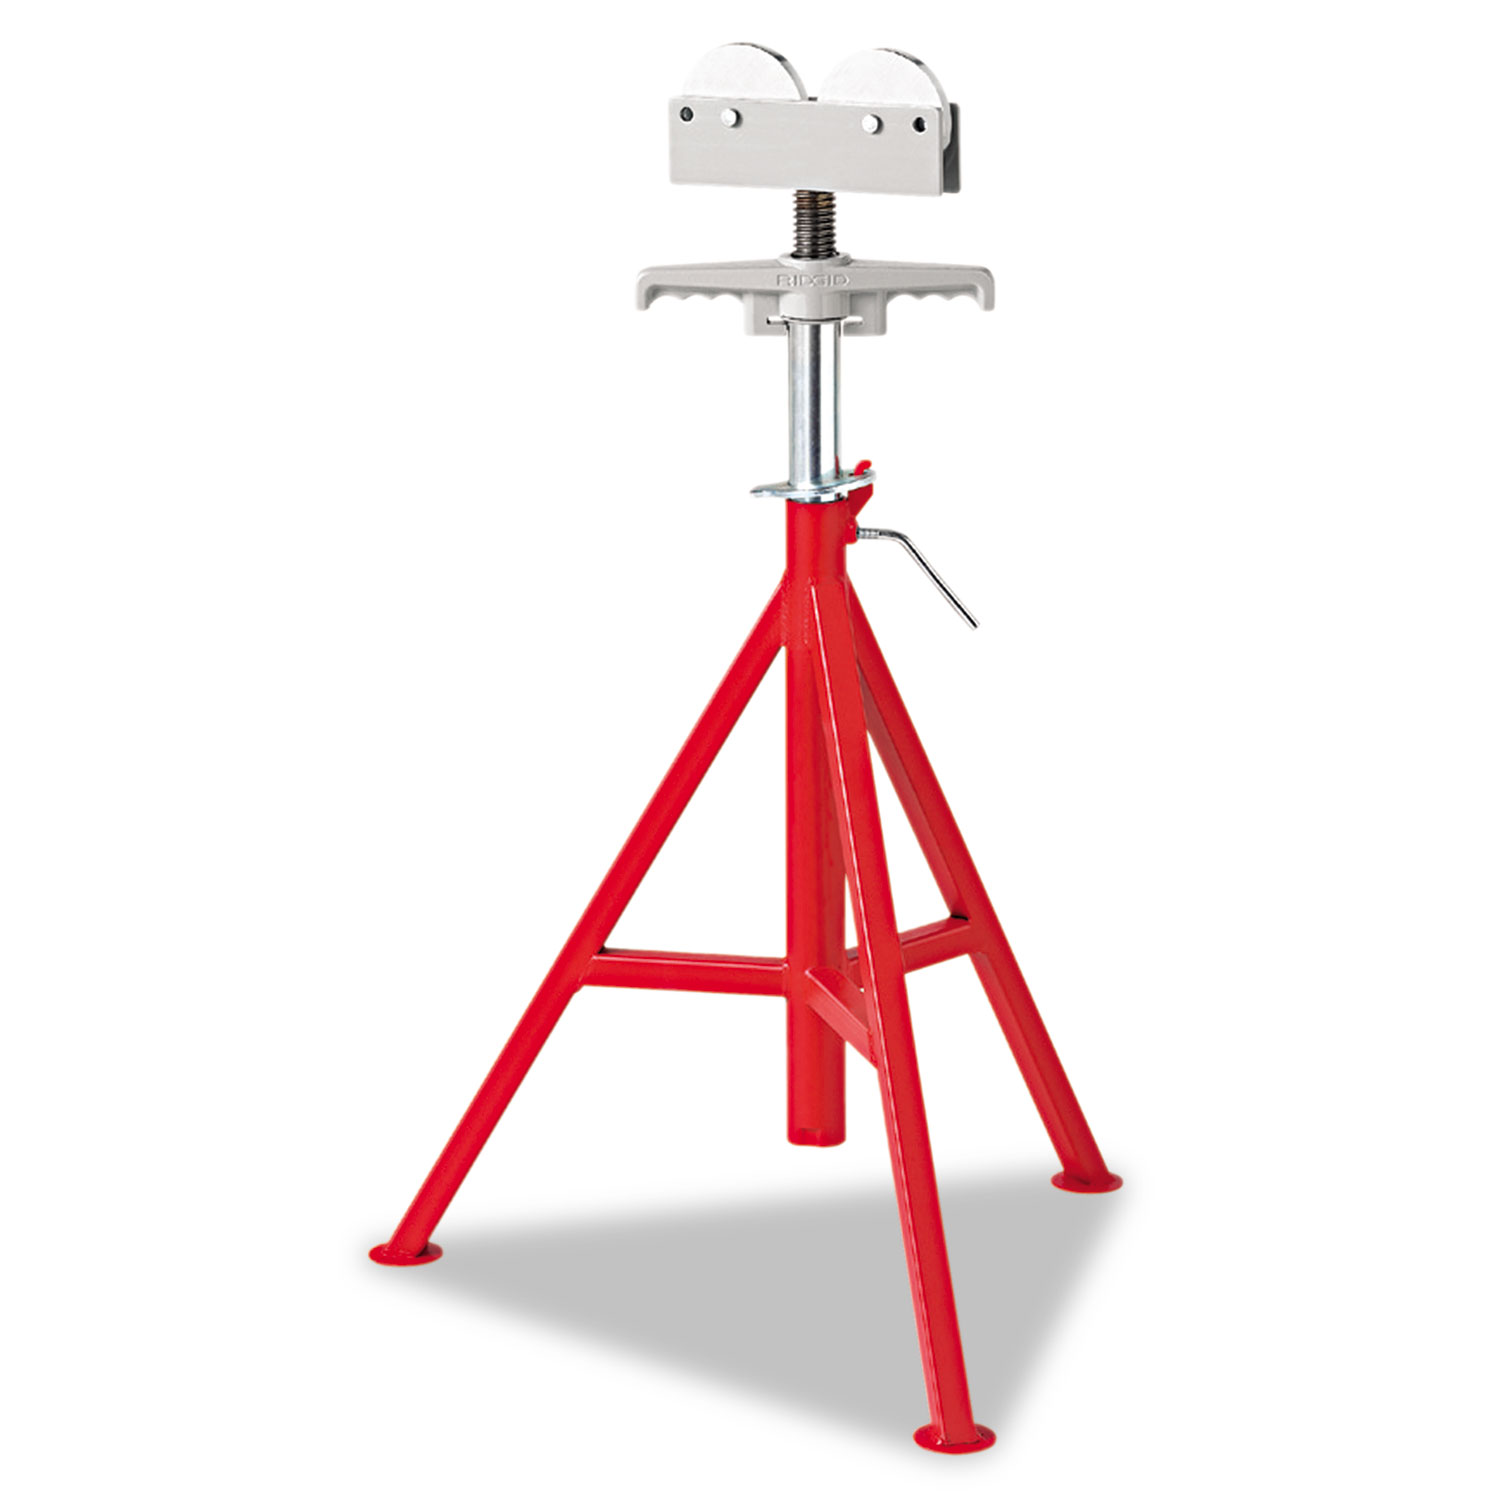 RJ-99 High Pipe Stand, 32 to 55 High, Red